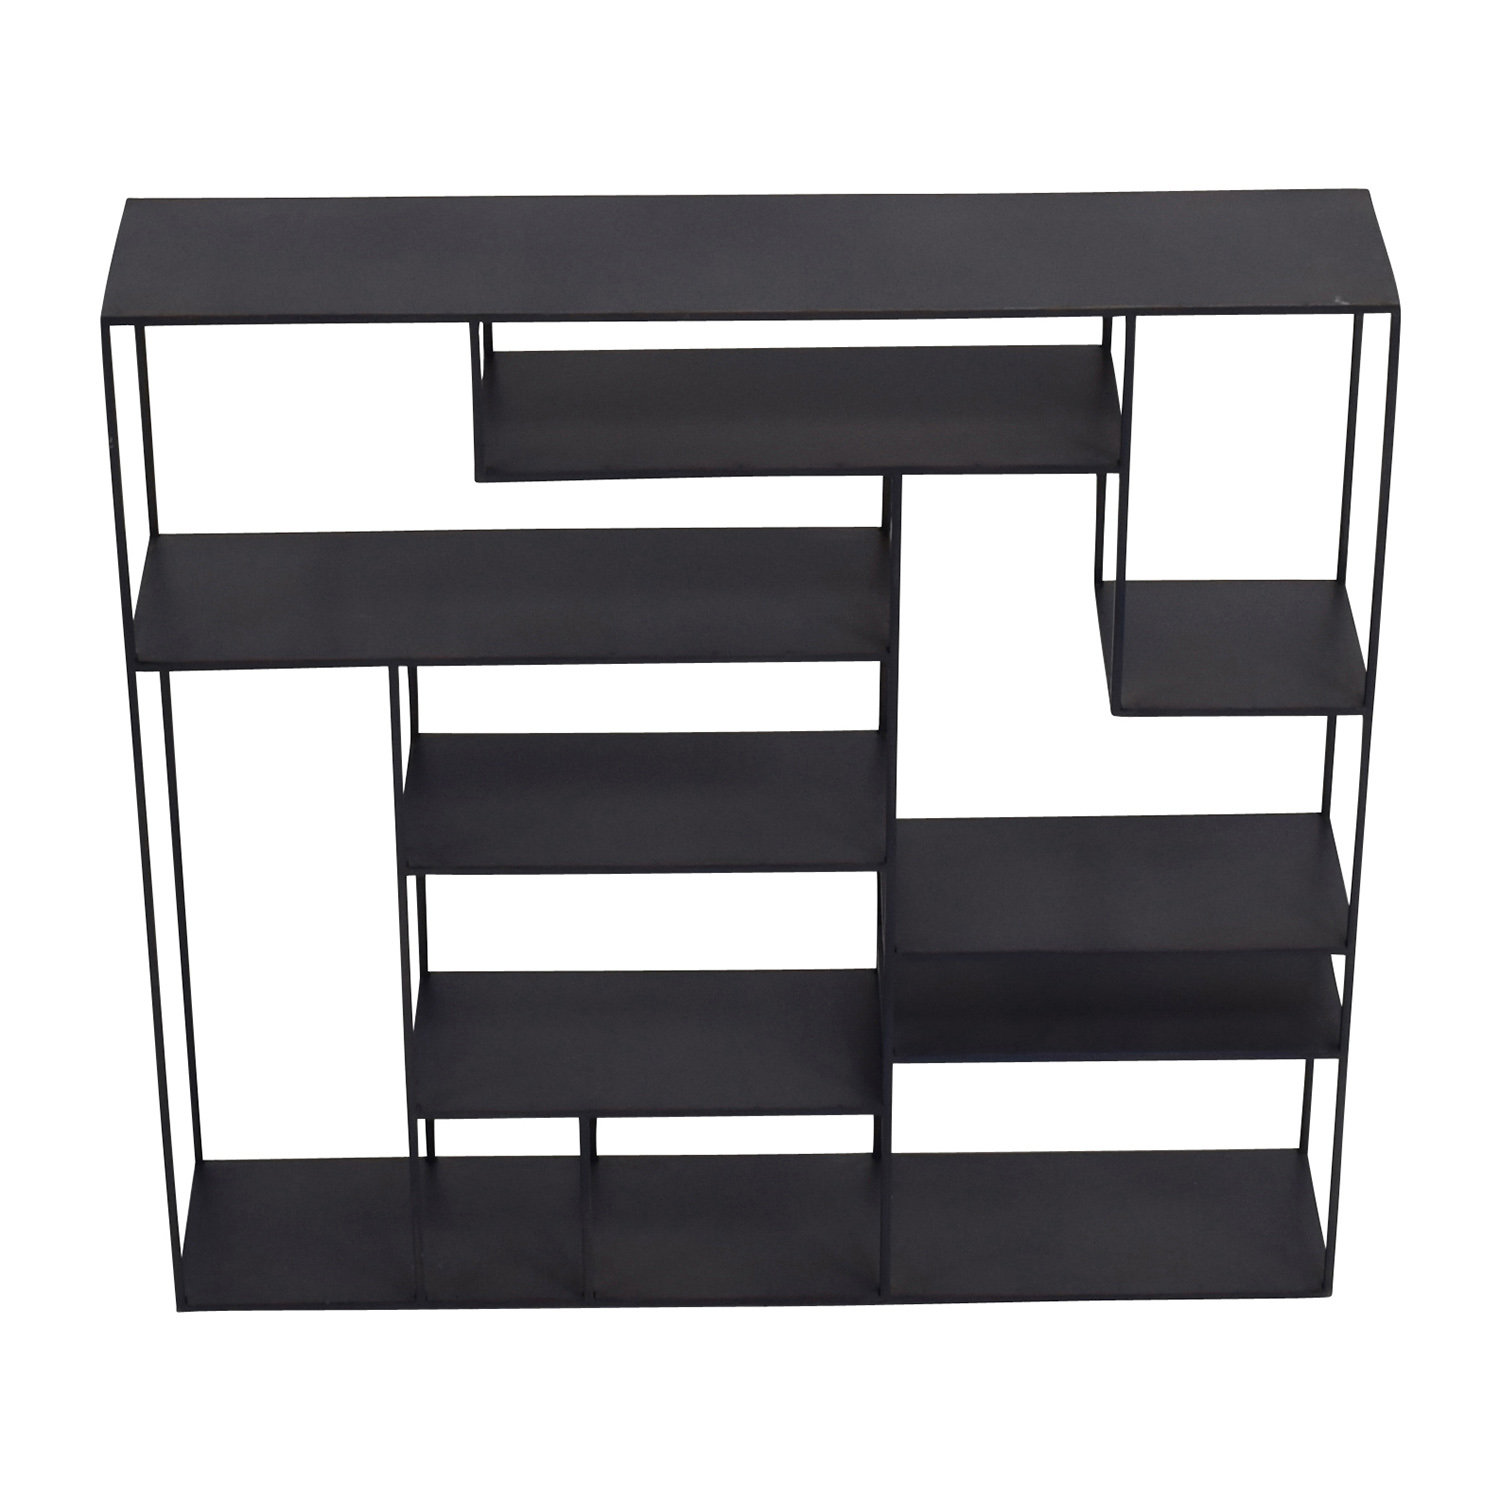 CB2 CB2 Alcove Black Metal Wall Shelf on sale